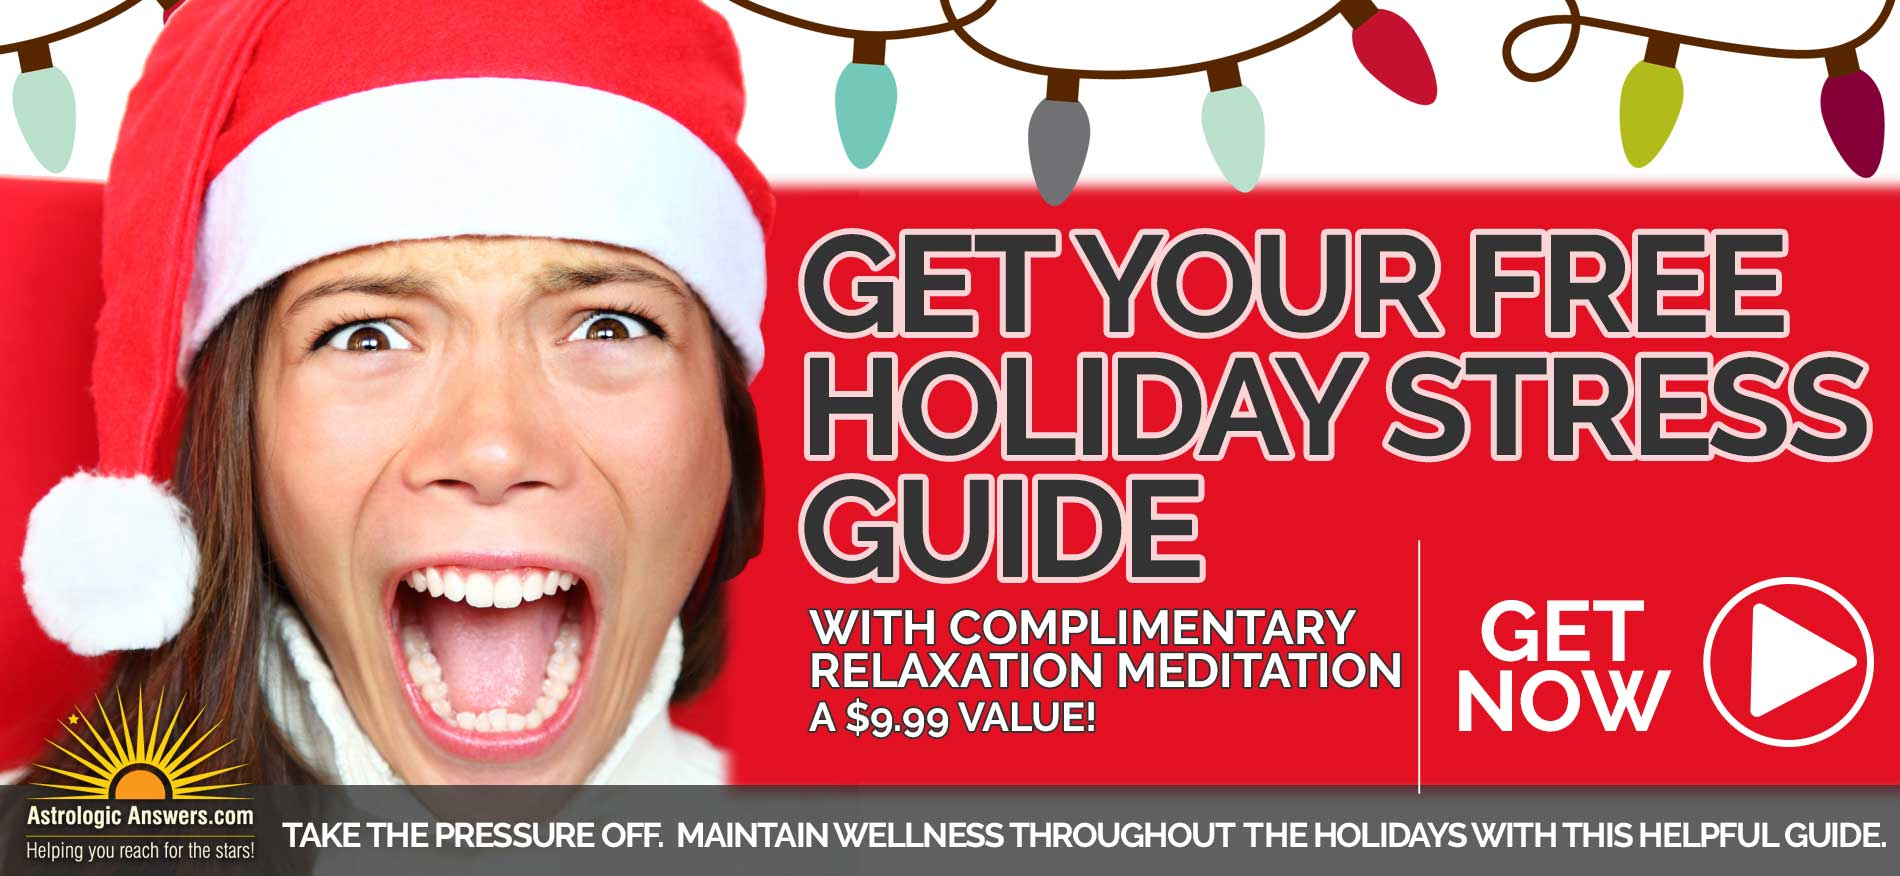 Free Holiday Stress Guide with Free Meditation Inage